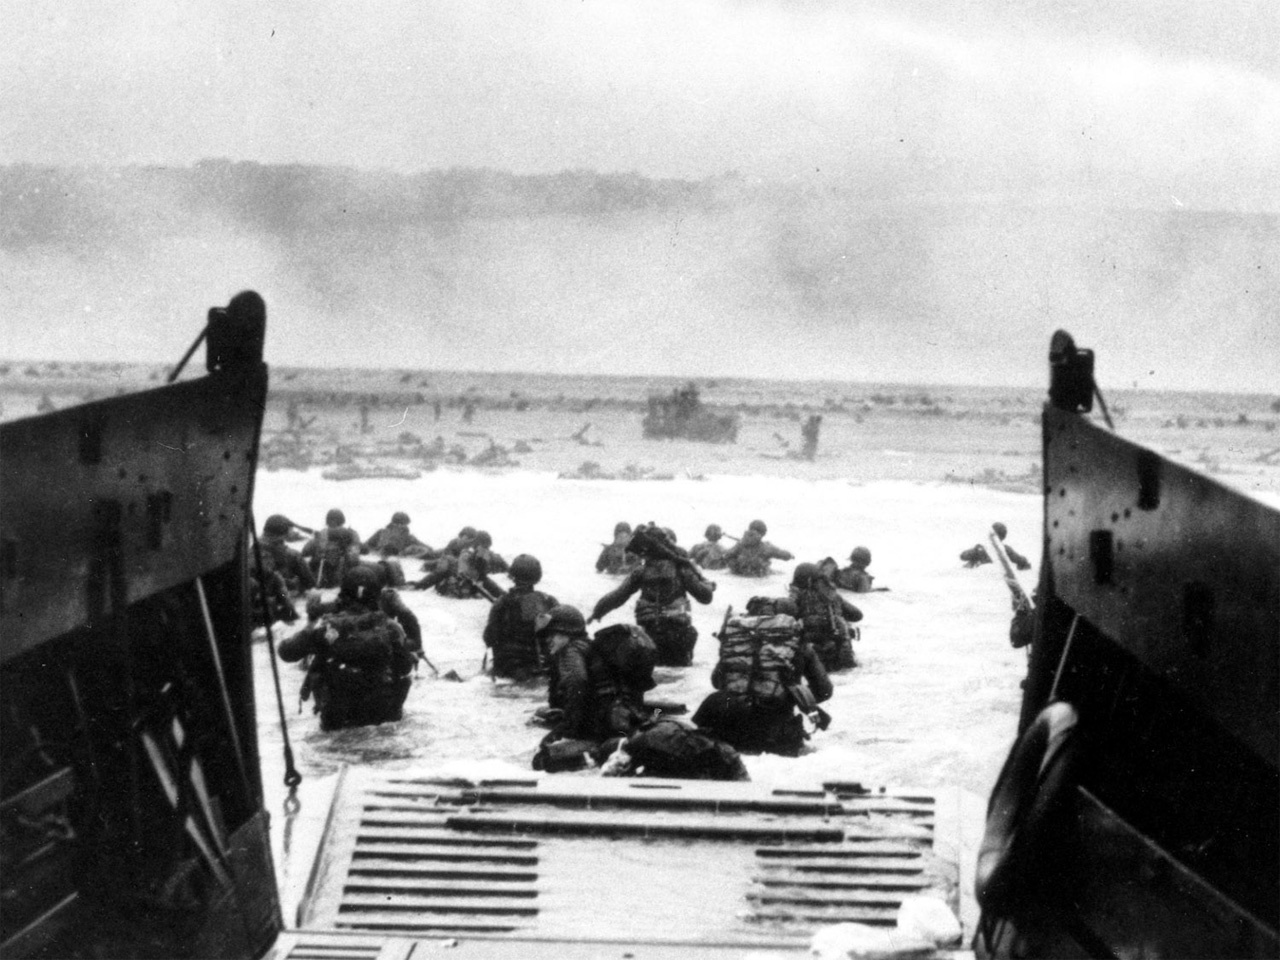 d day the most important days during world war ii Find out more about the history of d-day, including during world war ii bad weather on the days leading up to the operation caused it to be delayed for.